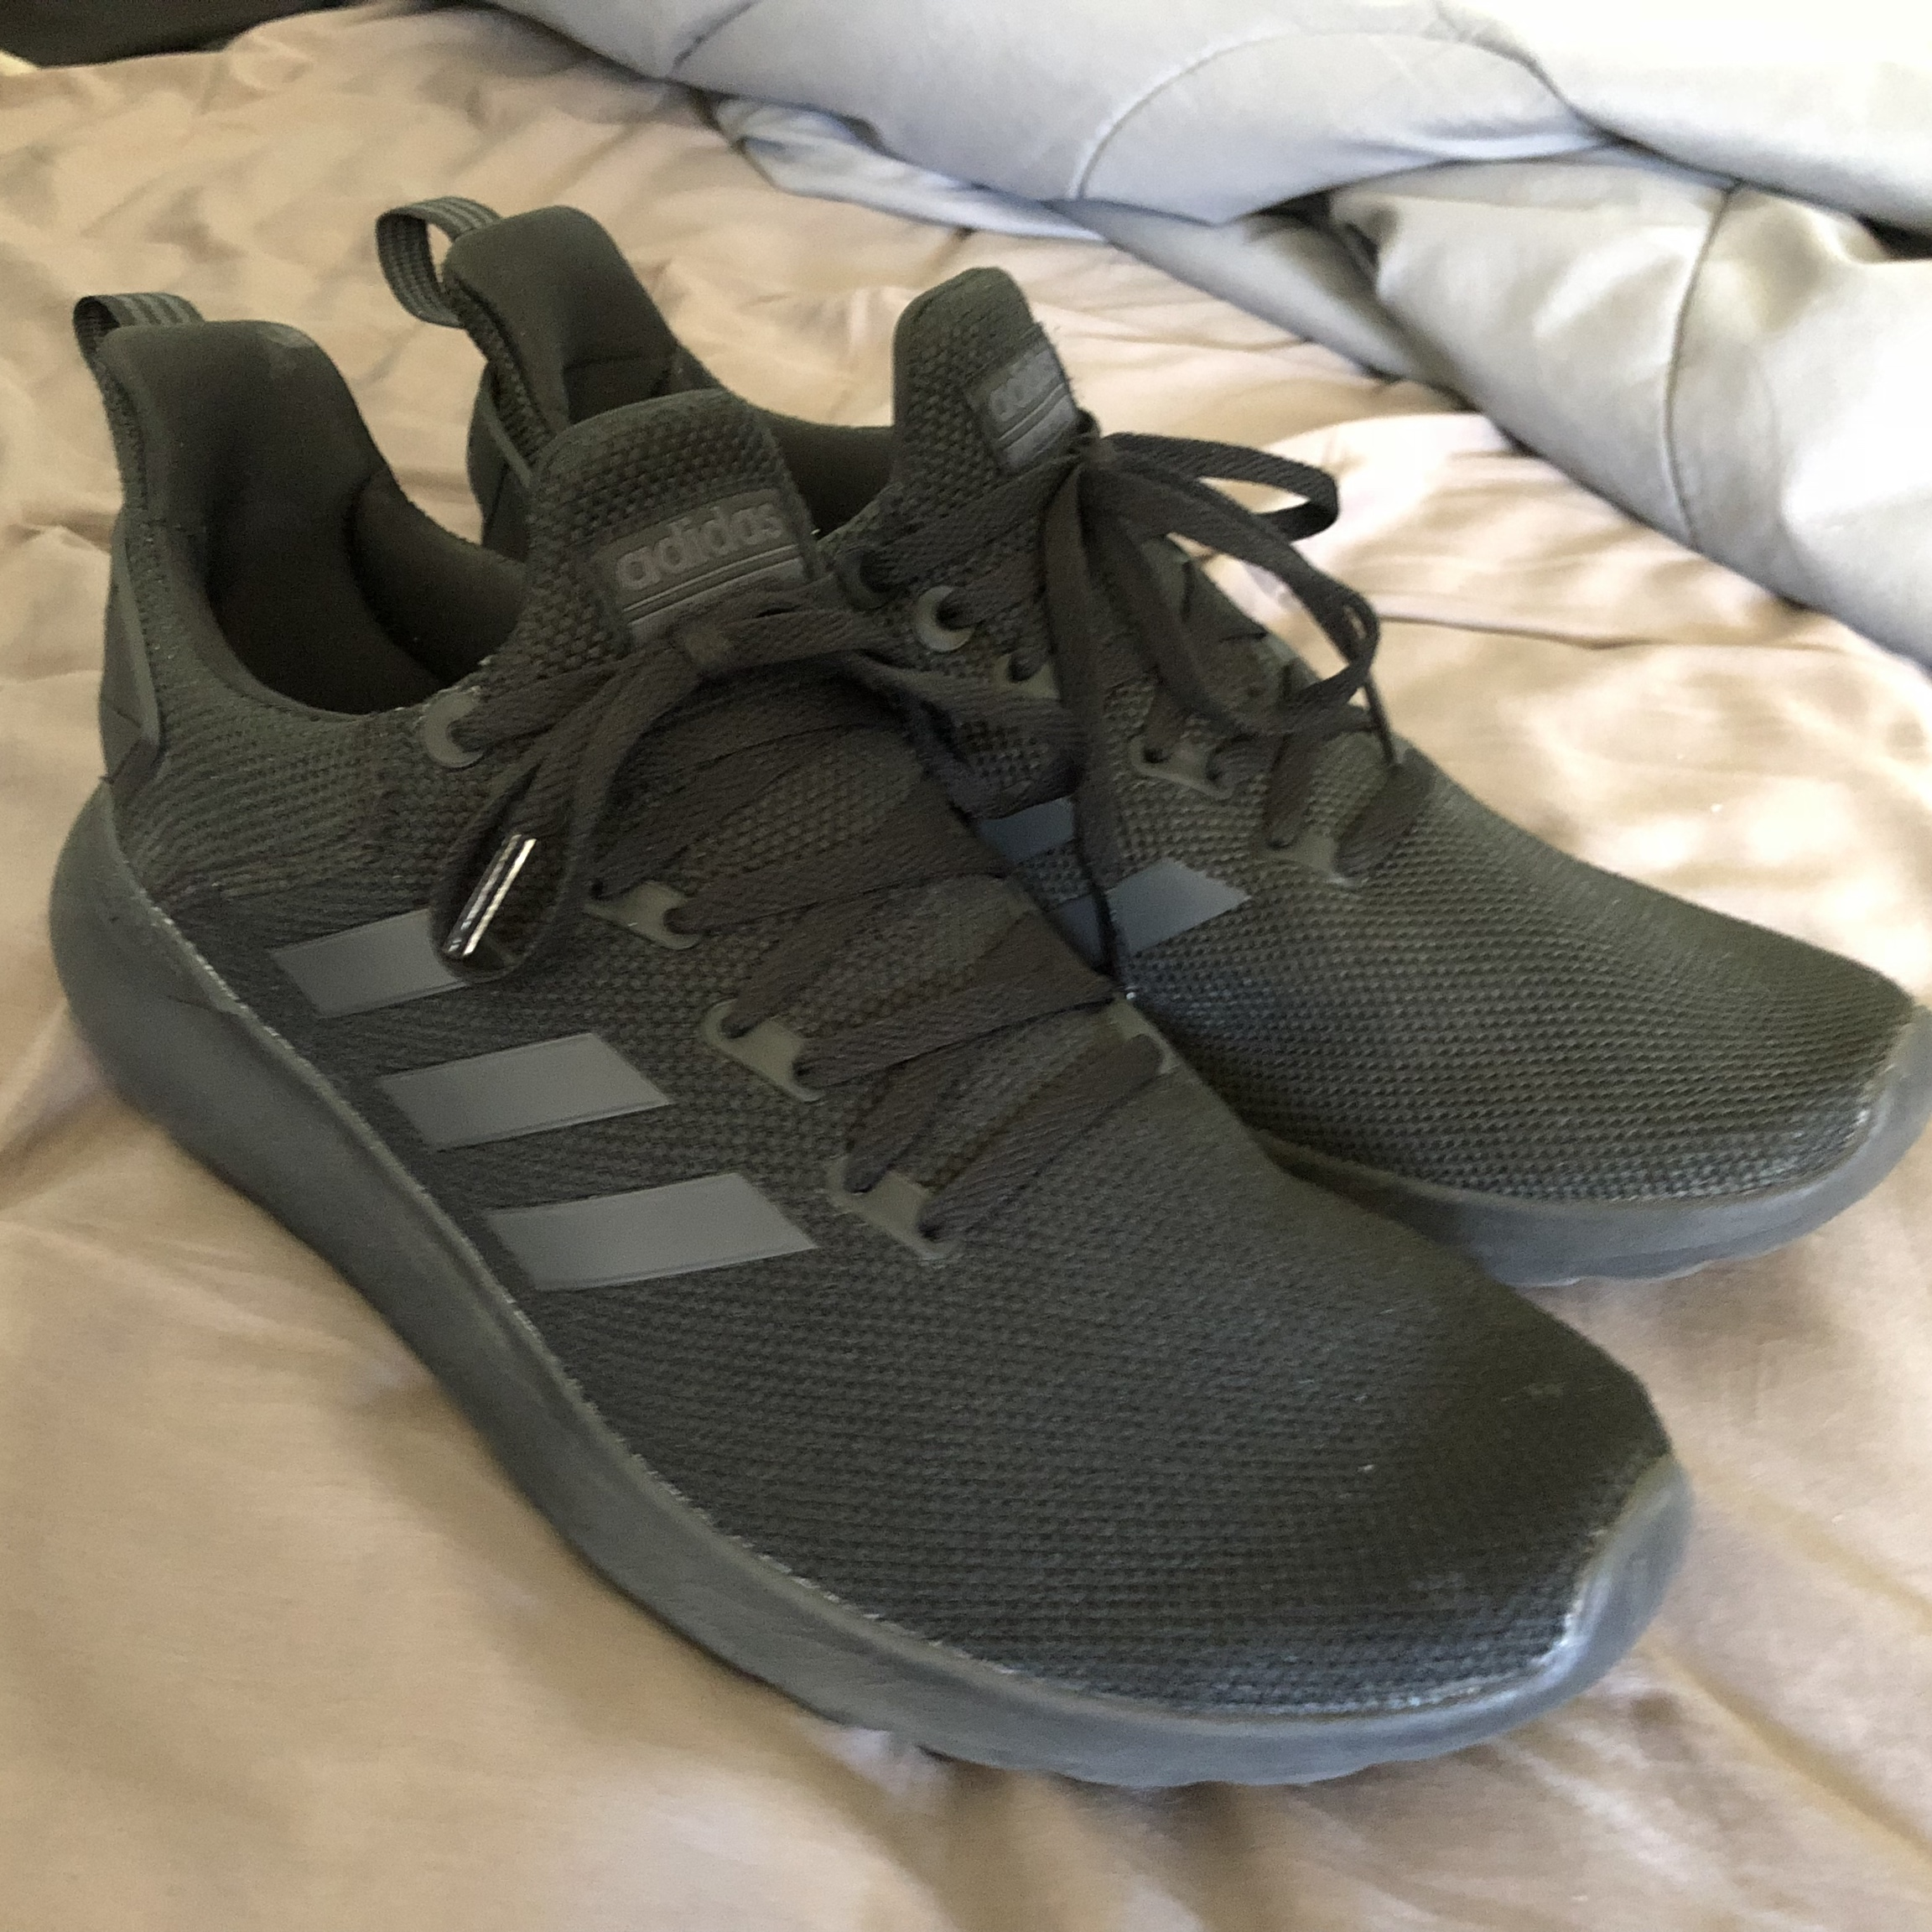 Adidas CloudFoam Lite Racer BYD Just bought recently Depop